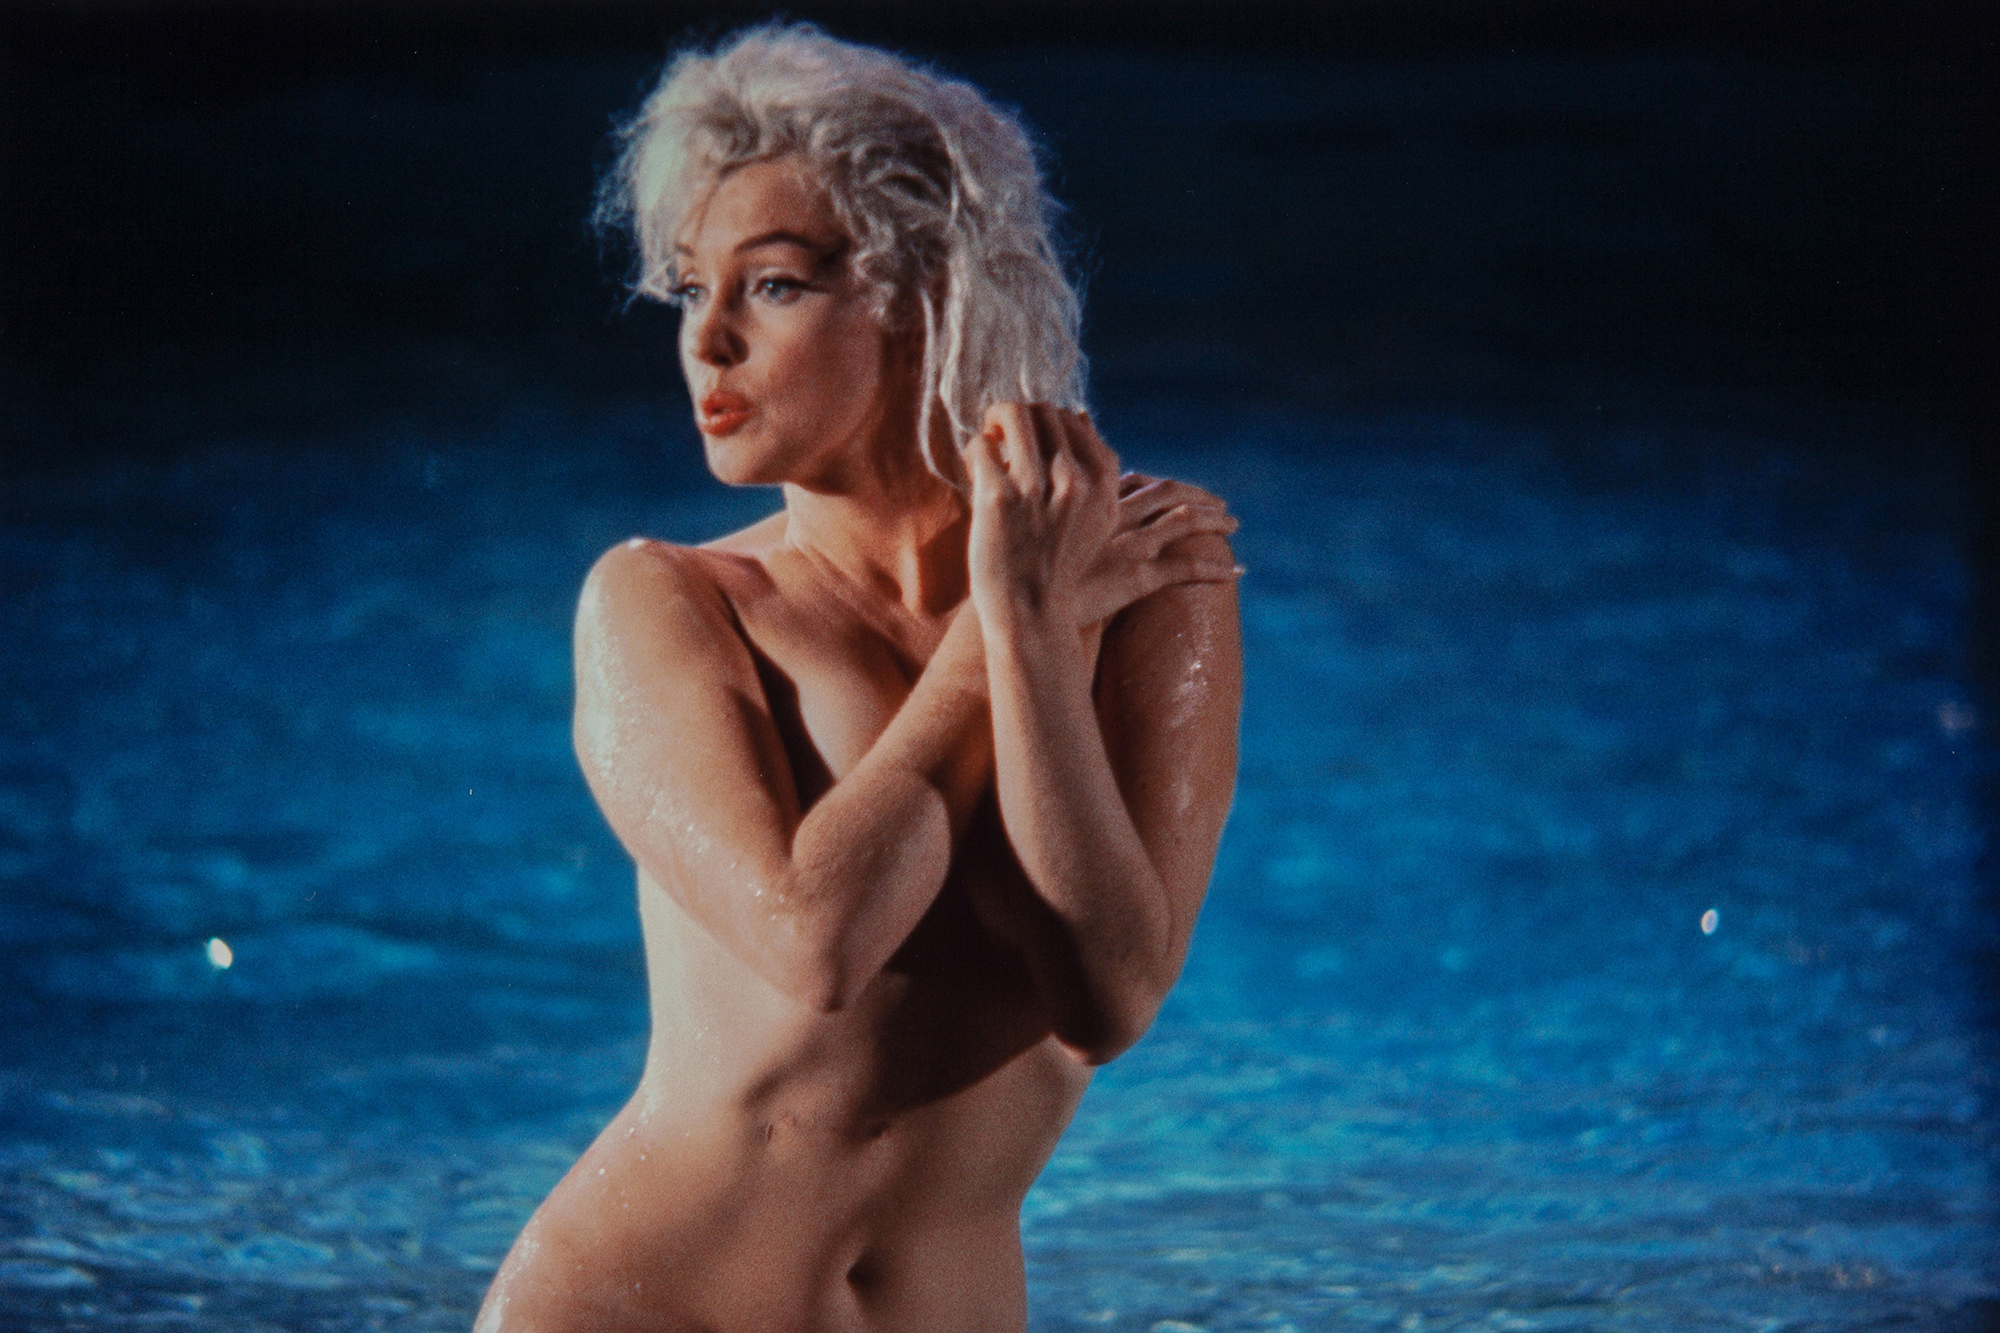 Photos of Marilyn Monroe Swimming Naked Going Up For